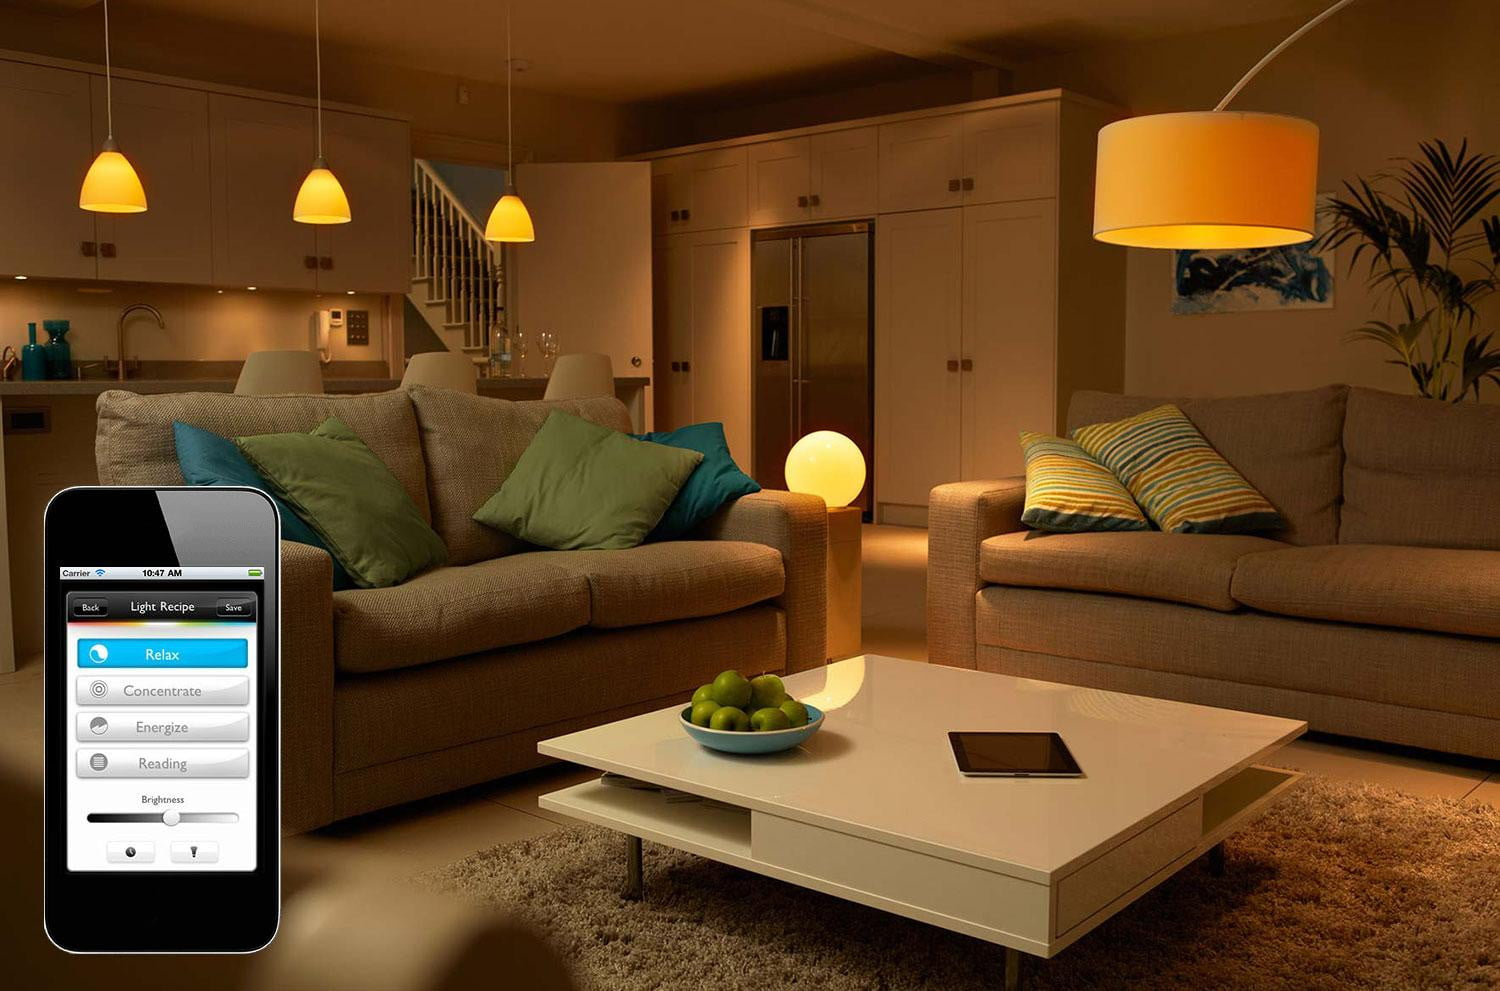 Plafondlamp Woonkamer Praxis Philips Hue Review Digital Trends